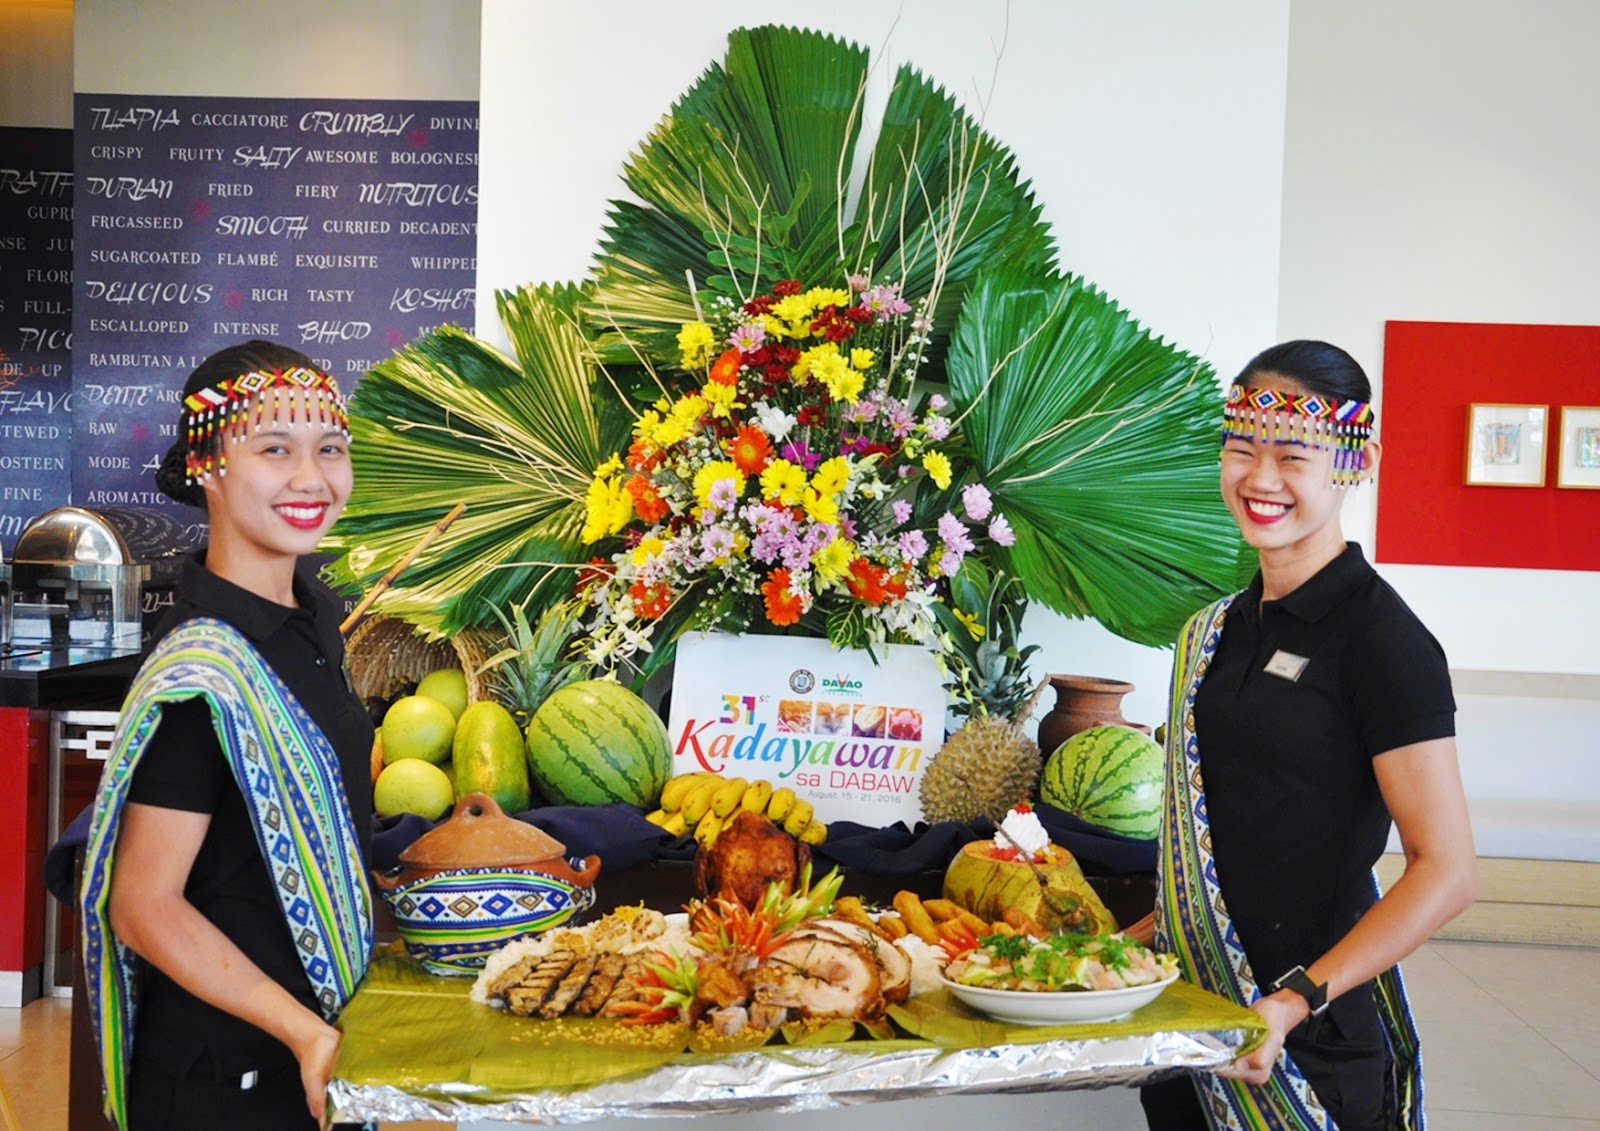 rbg bar and grill Kadayawan Special Boodle fight rematch park inn by radisson davao